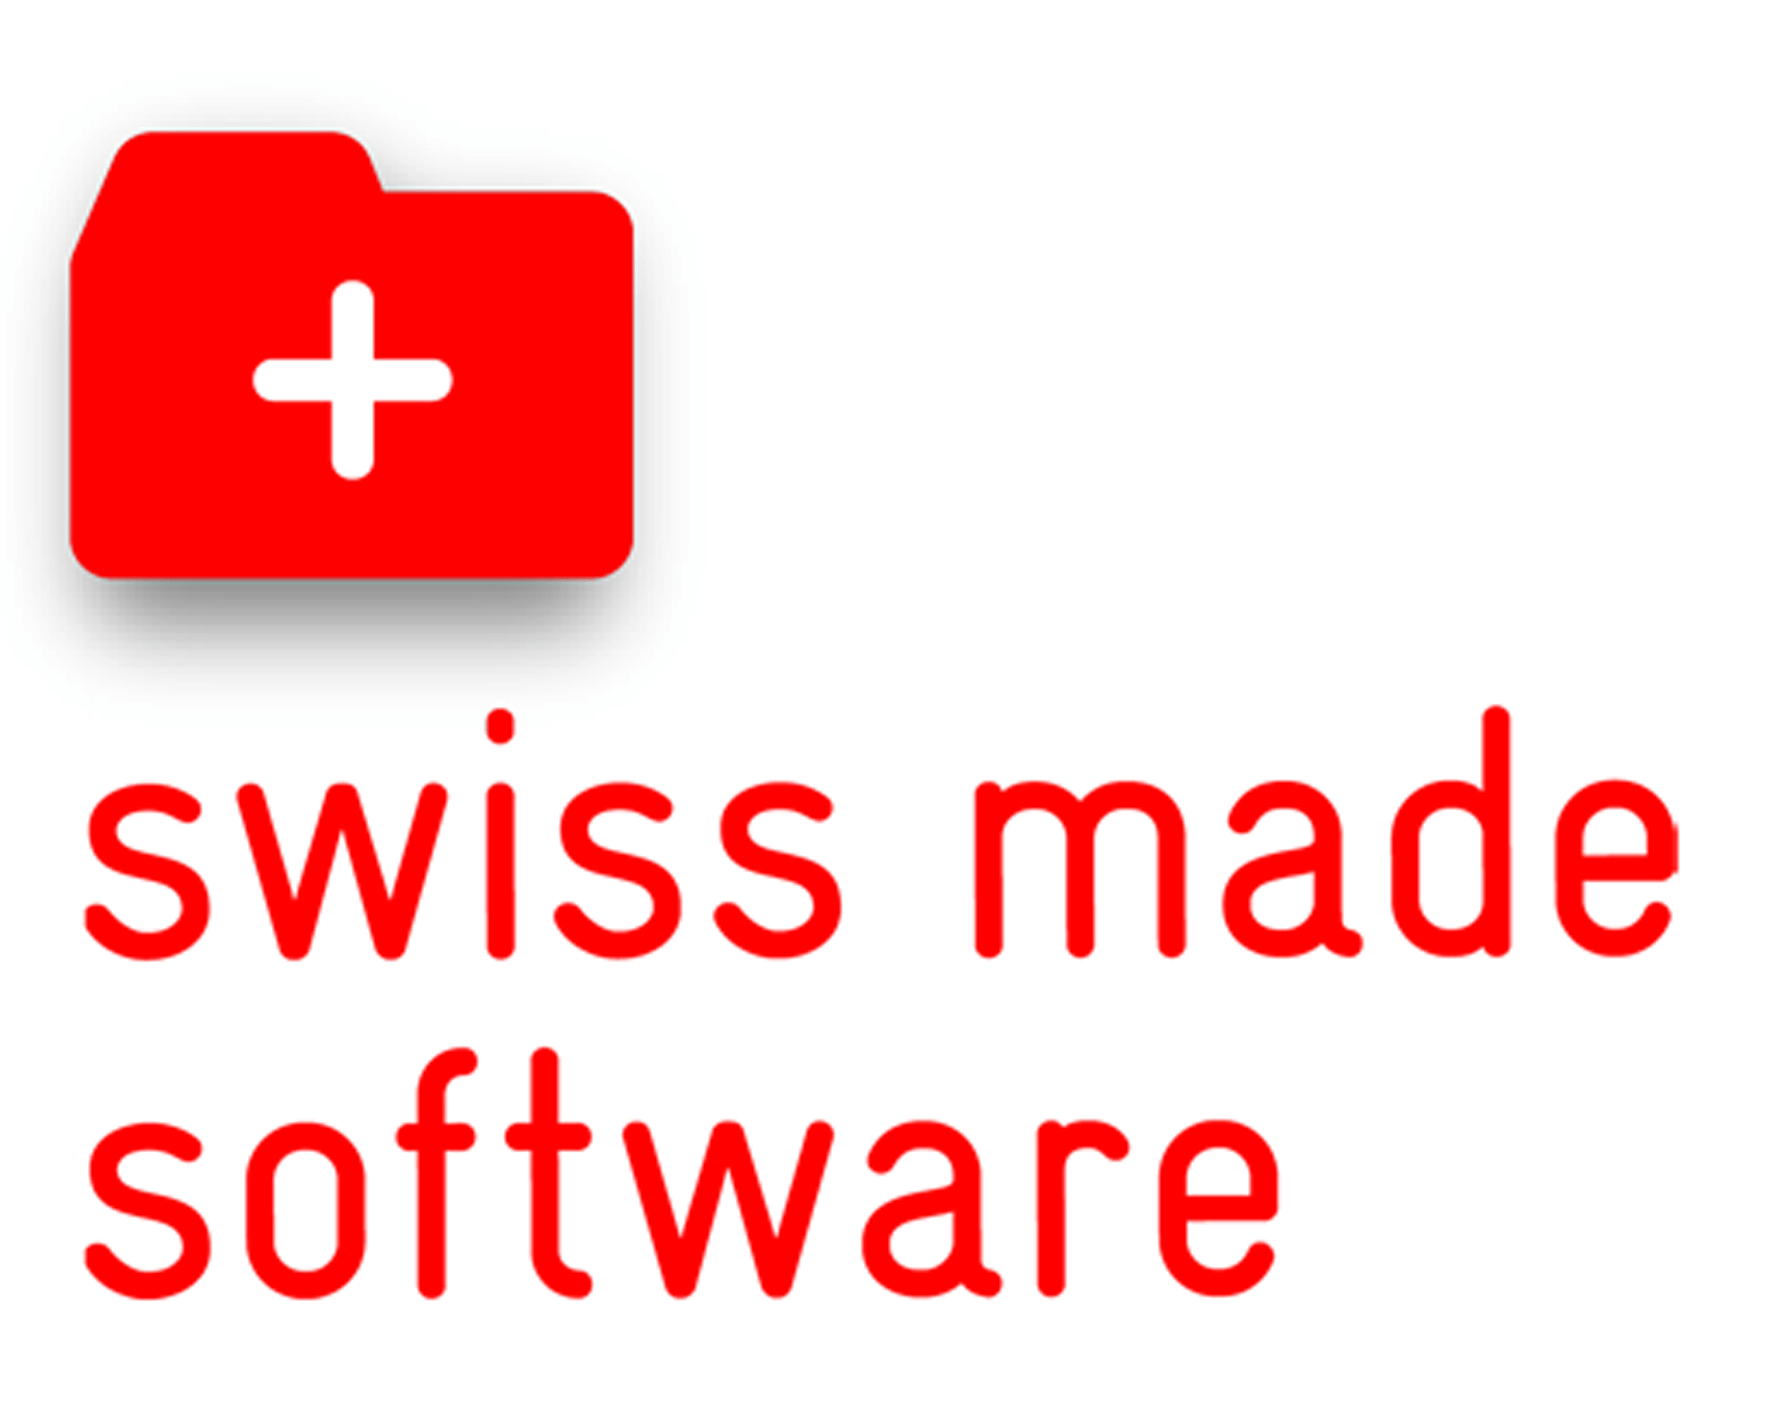 IFAS Swiss Made Software